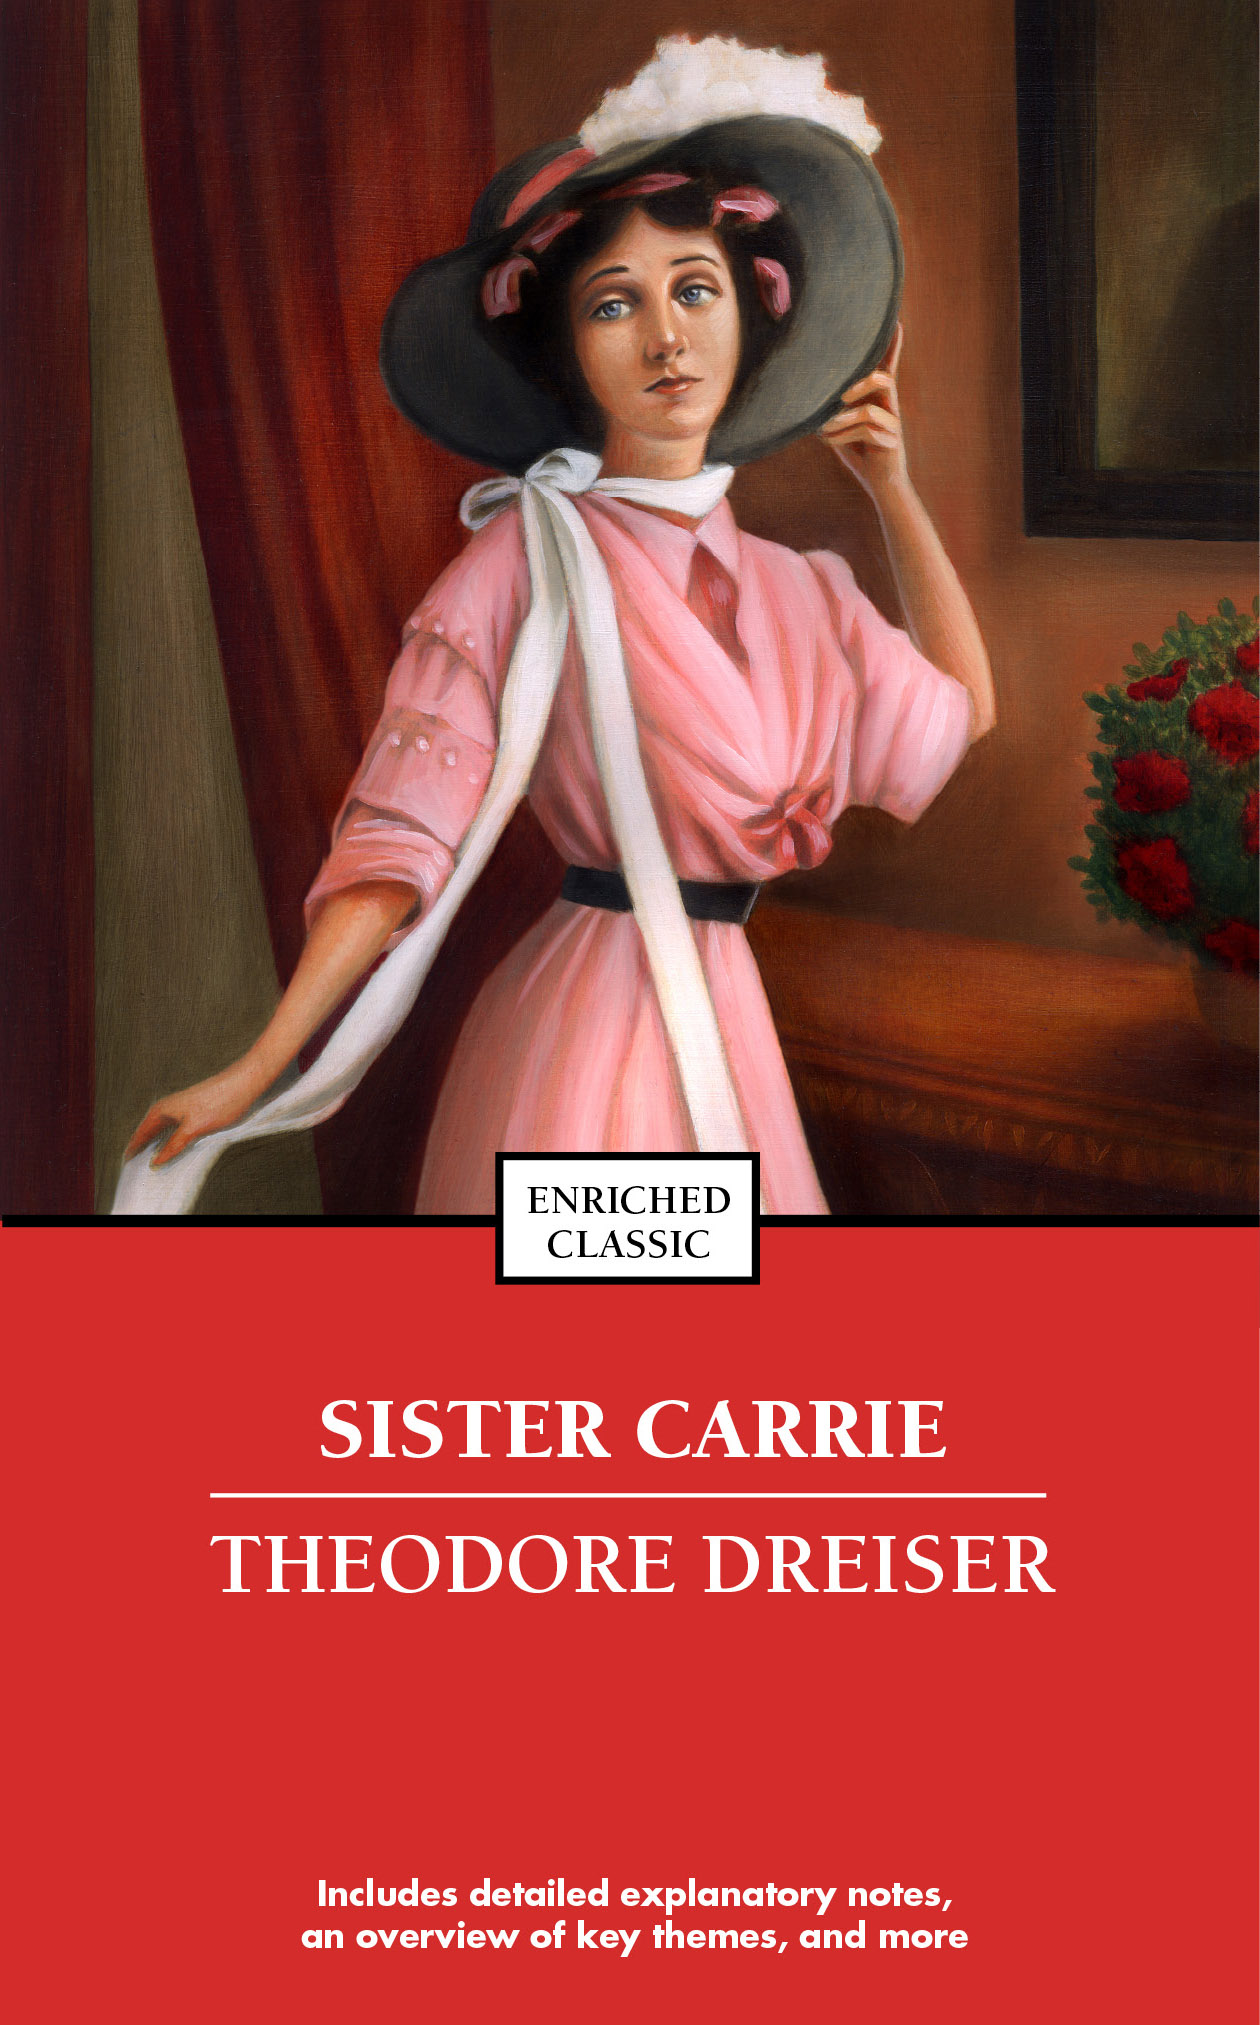 the summary of the novel sister carrie by theodore dreiser Sister carrie [theodore dreiser] on amazoncom free shipping on qualifying offers sister carrie is a novel written by theodore dreiser that centers around a young country girl who tries to live the american dream after she moves to chicago.